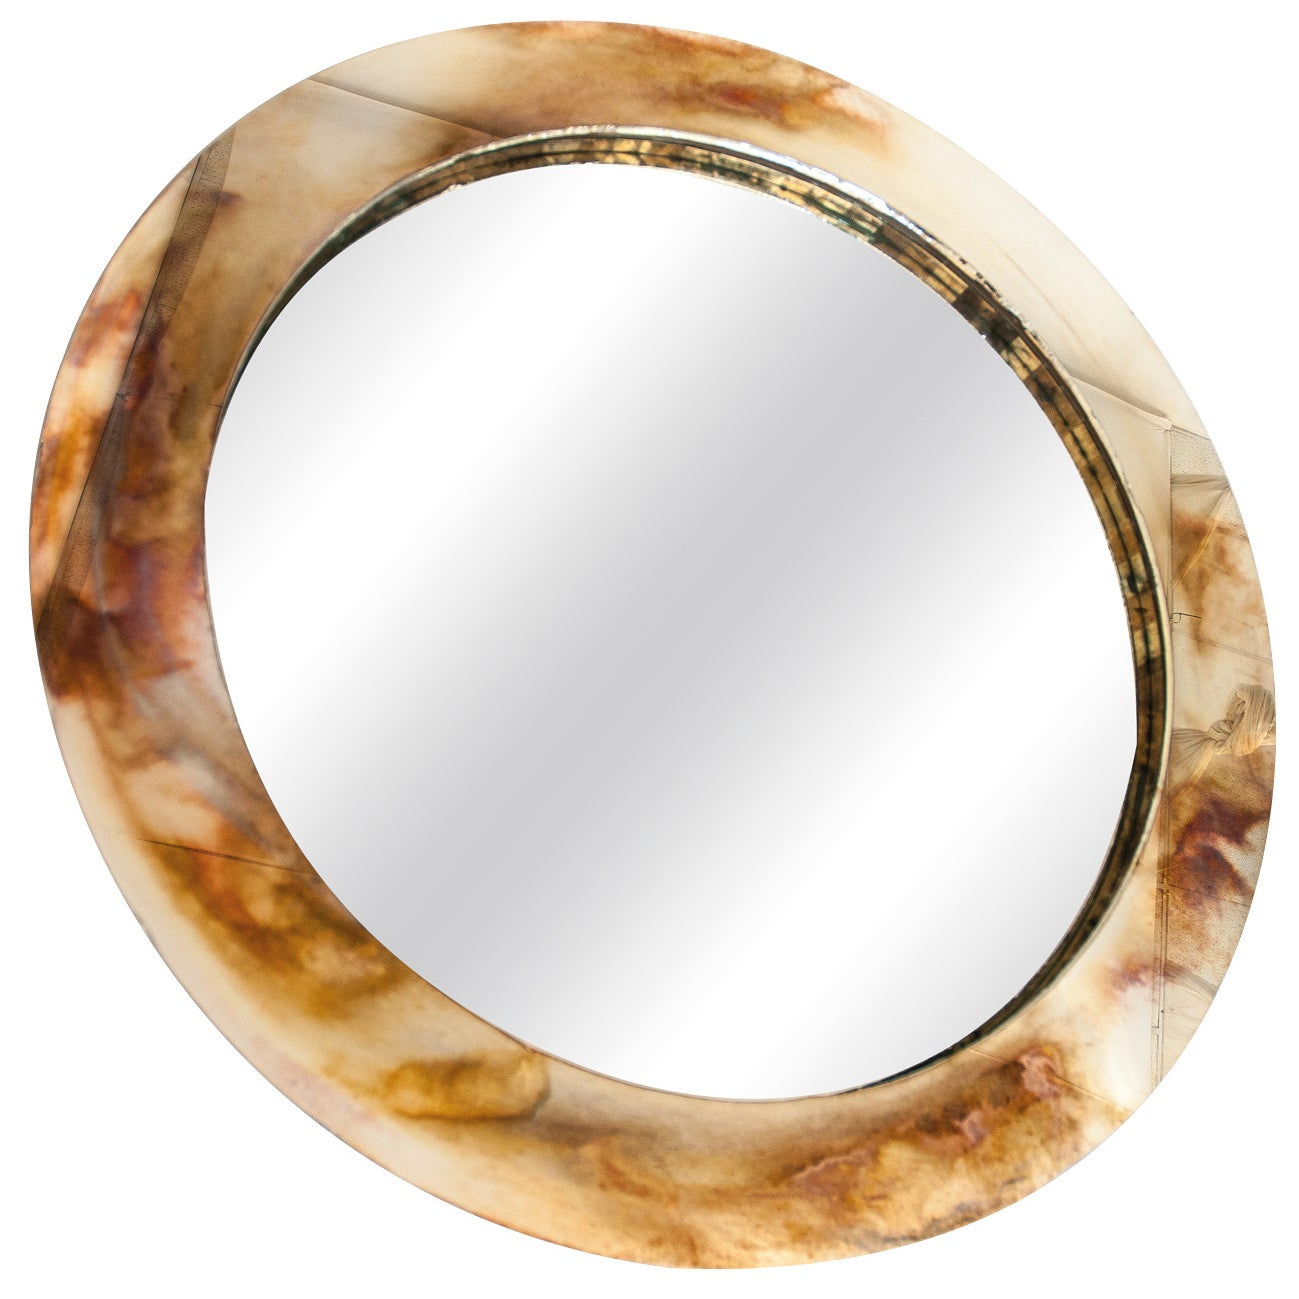 """Life"" contemporary mirror, central mirror, bronzed silvered glass ring,Birch"